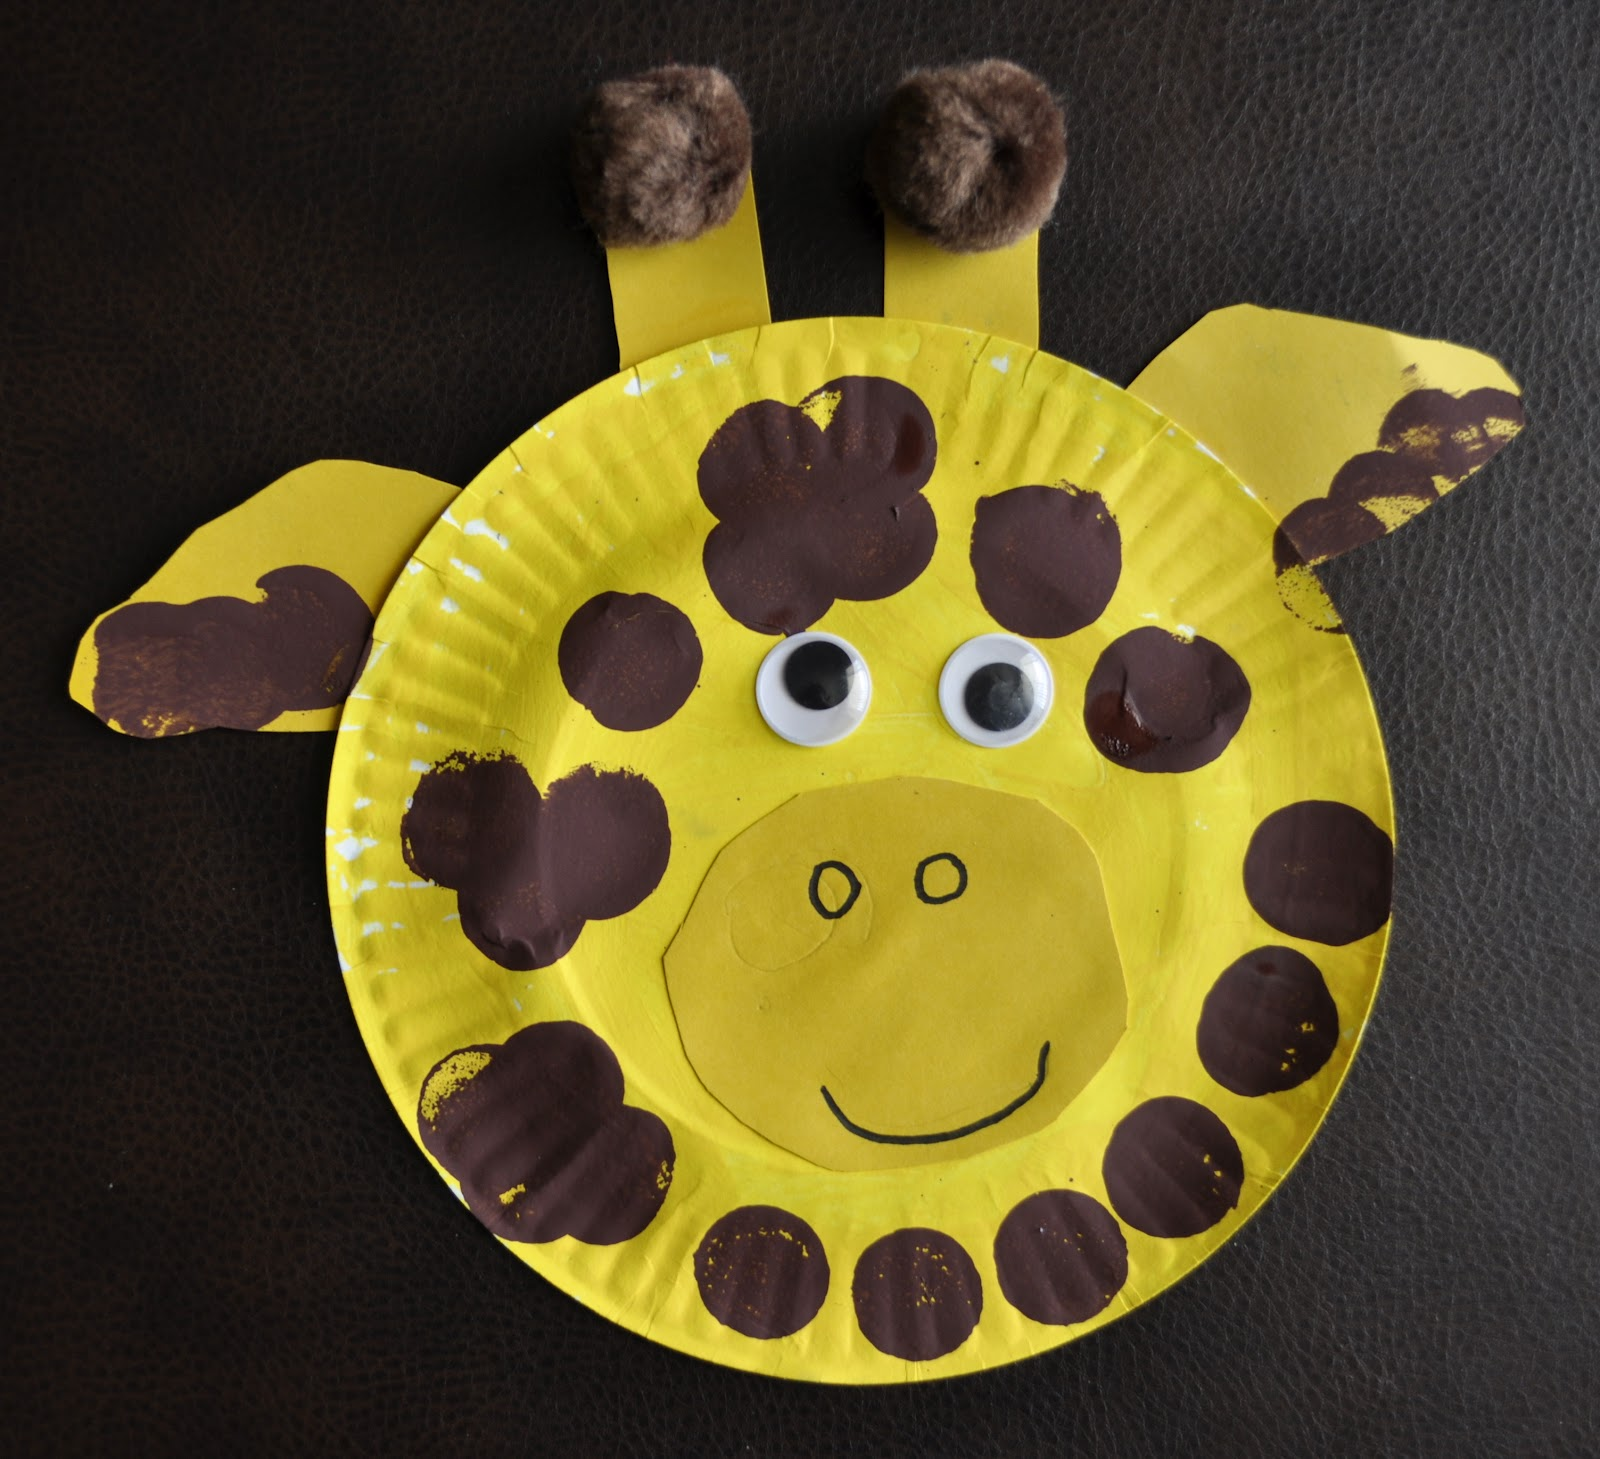 Paper Plate Giraffe | I Heart Crafty Things